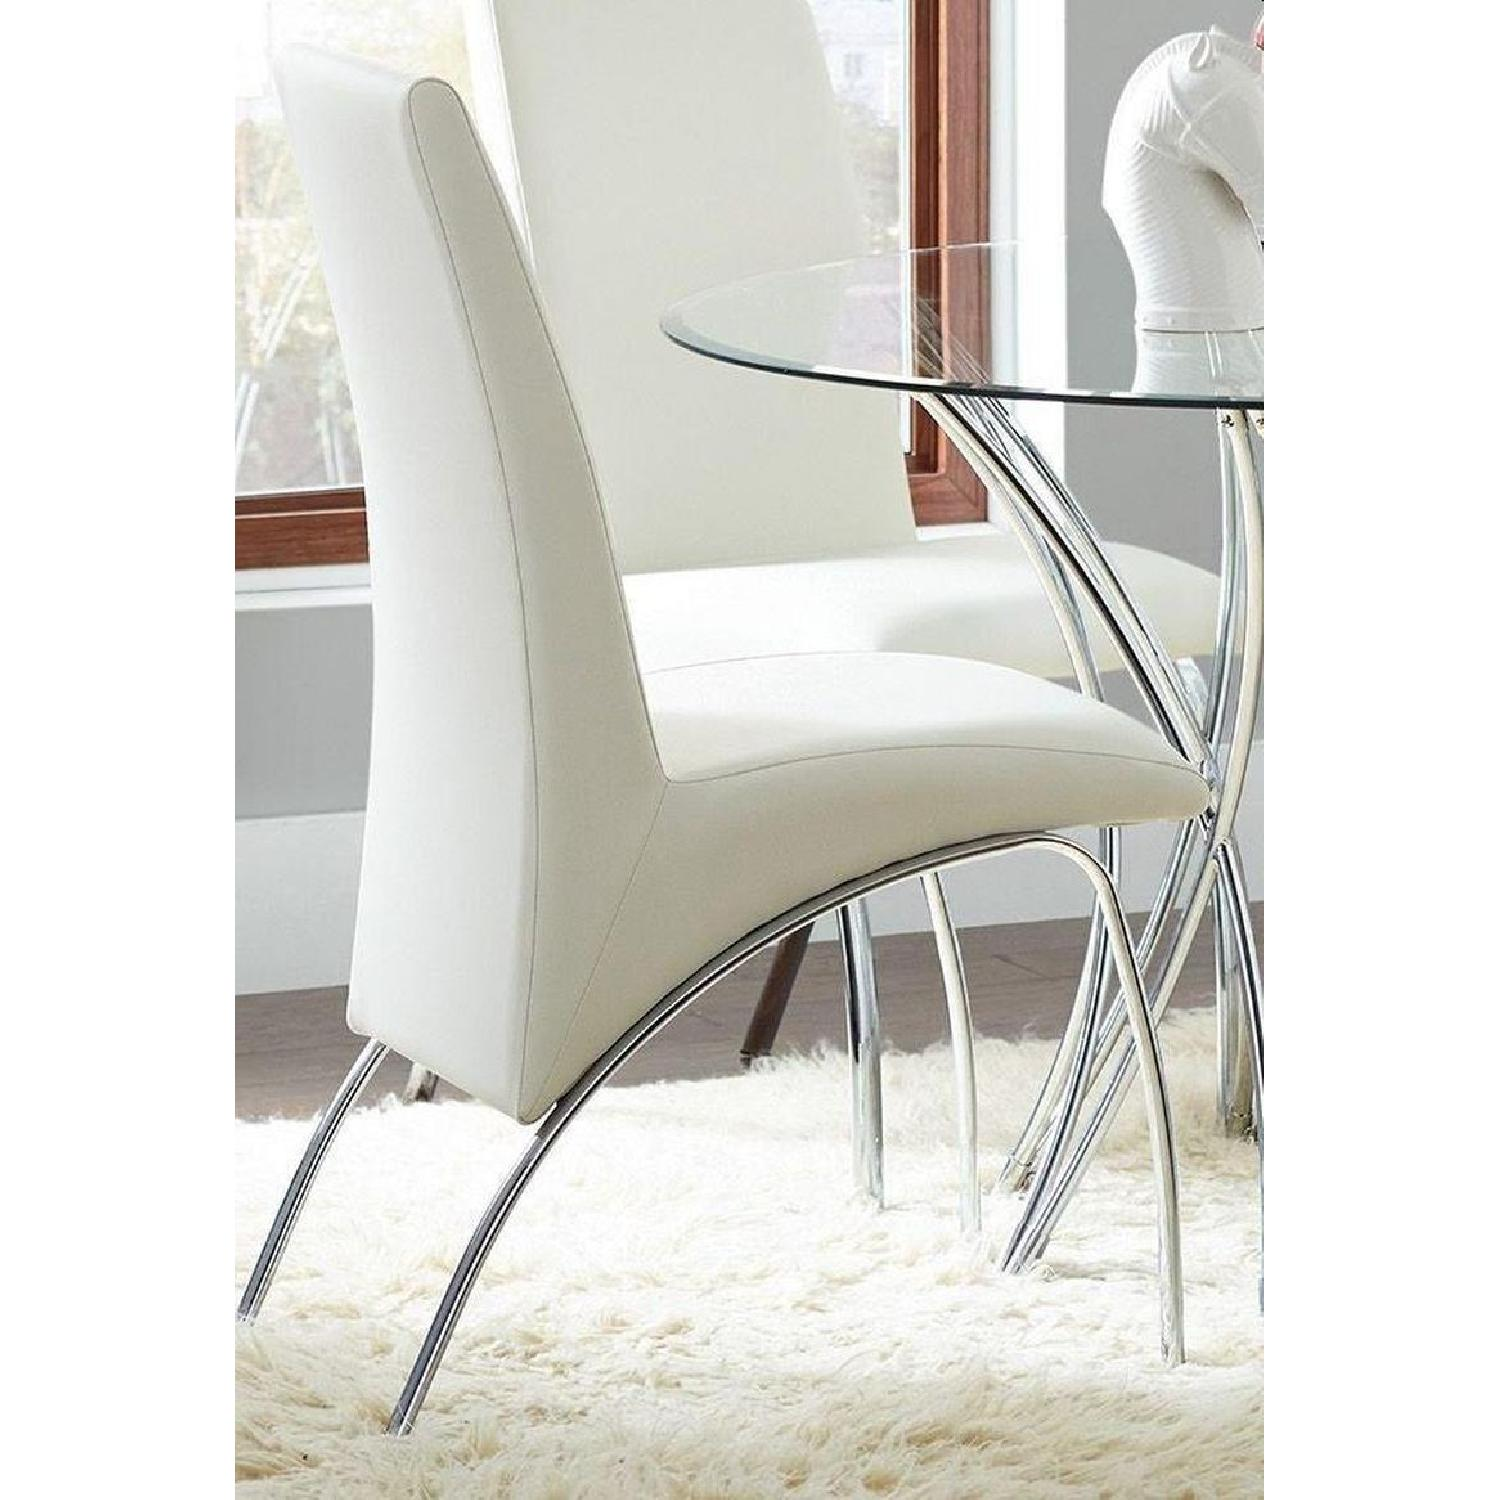 Modern Dining Chair in White Leatherette w/ Chrome Legs - image-1